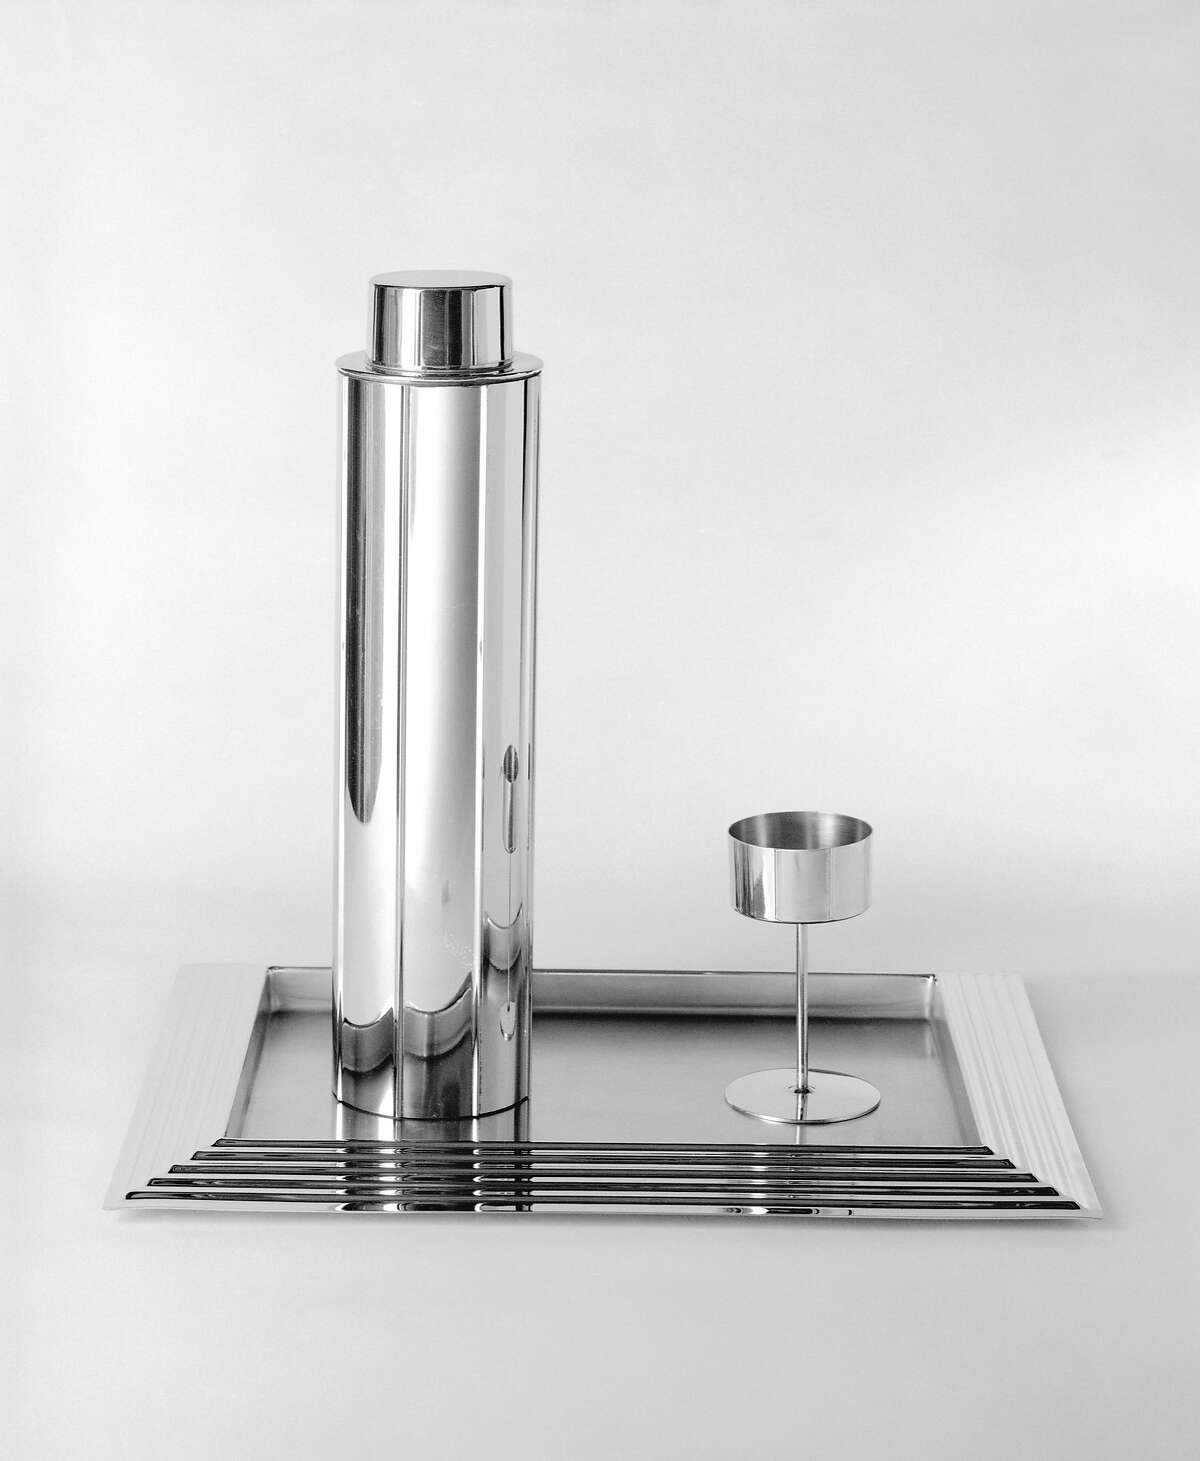 """Norman Bel Geddes, """"Skyscraper"""" cocktail shaker, glass and serving tray, designed 1934, manufactured 1935."""